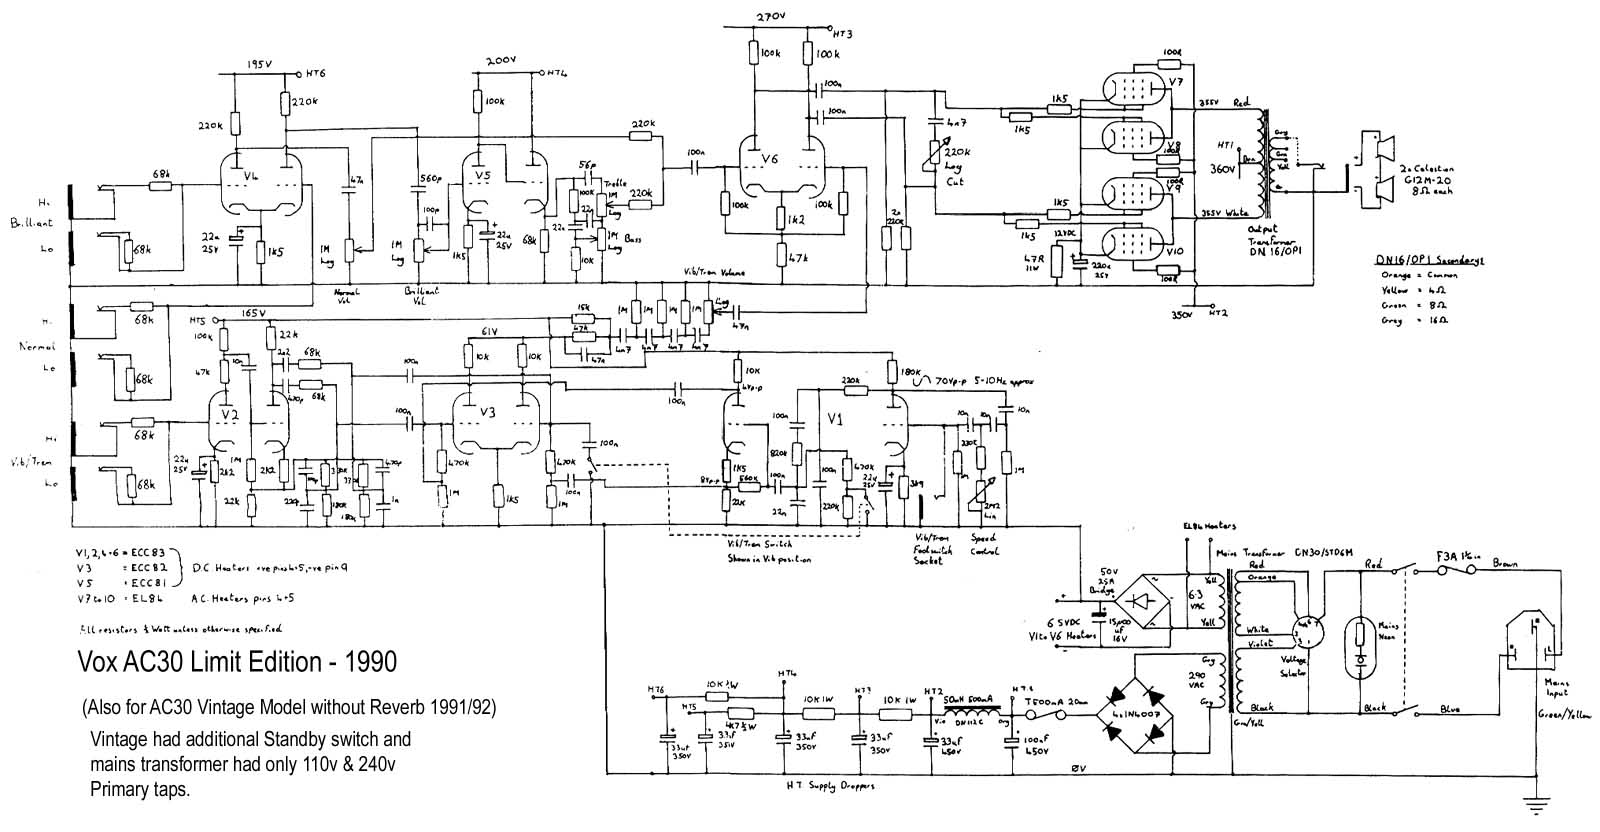 30 Model A Wire Diagram Detailed Schematics Some T Wiring Vox Vintage Circuit Diagrams For Generator